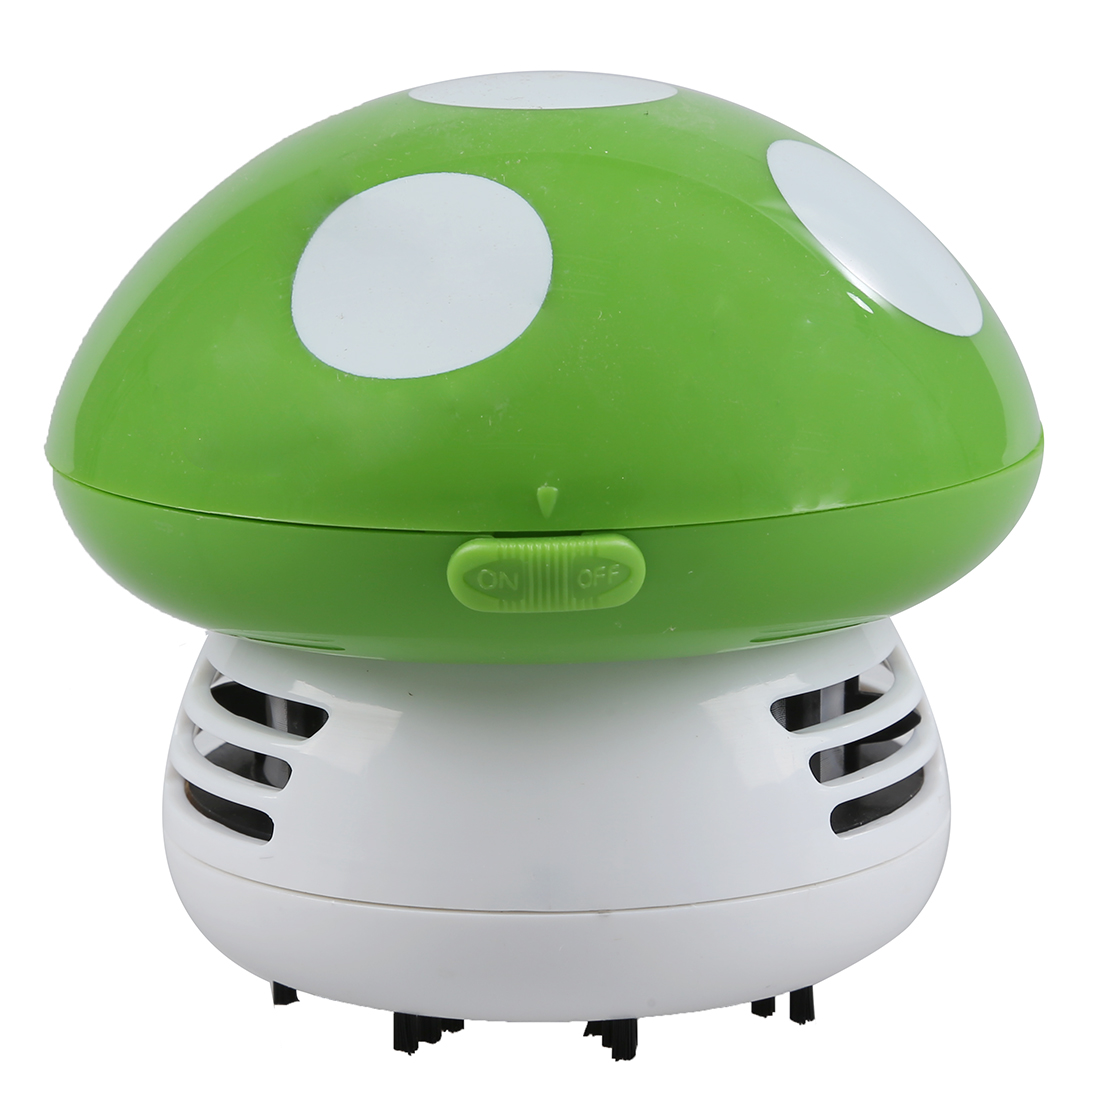 New Home Handheld Mushroom Shaped Mini Vacuum Cleaner Car Laptop keyboard Desktop Dust cleaner-green 2 suction modes usb vacuum cleaner wireless handheld vacuum cleaner mini portable keyboard desktop cleaner for home office